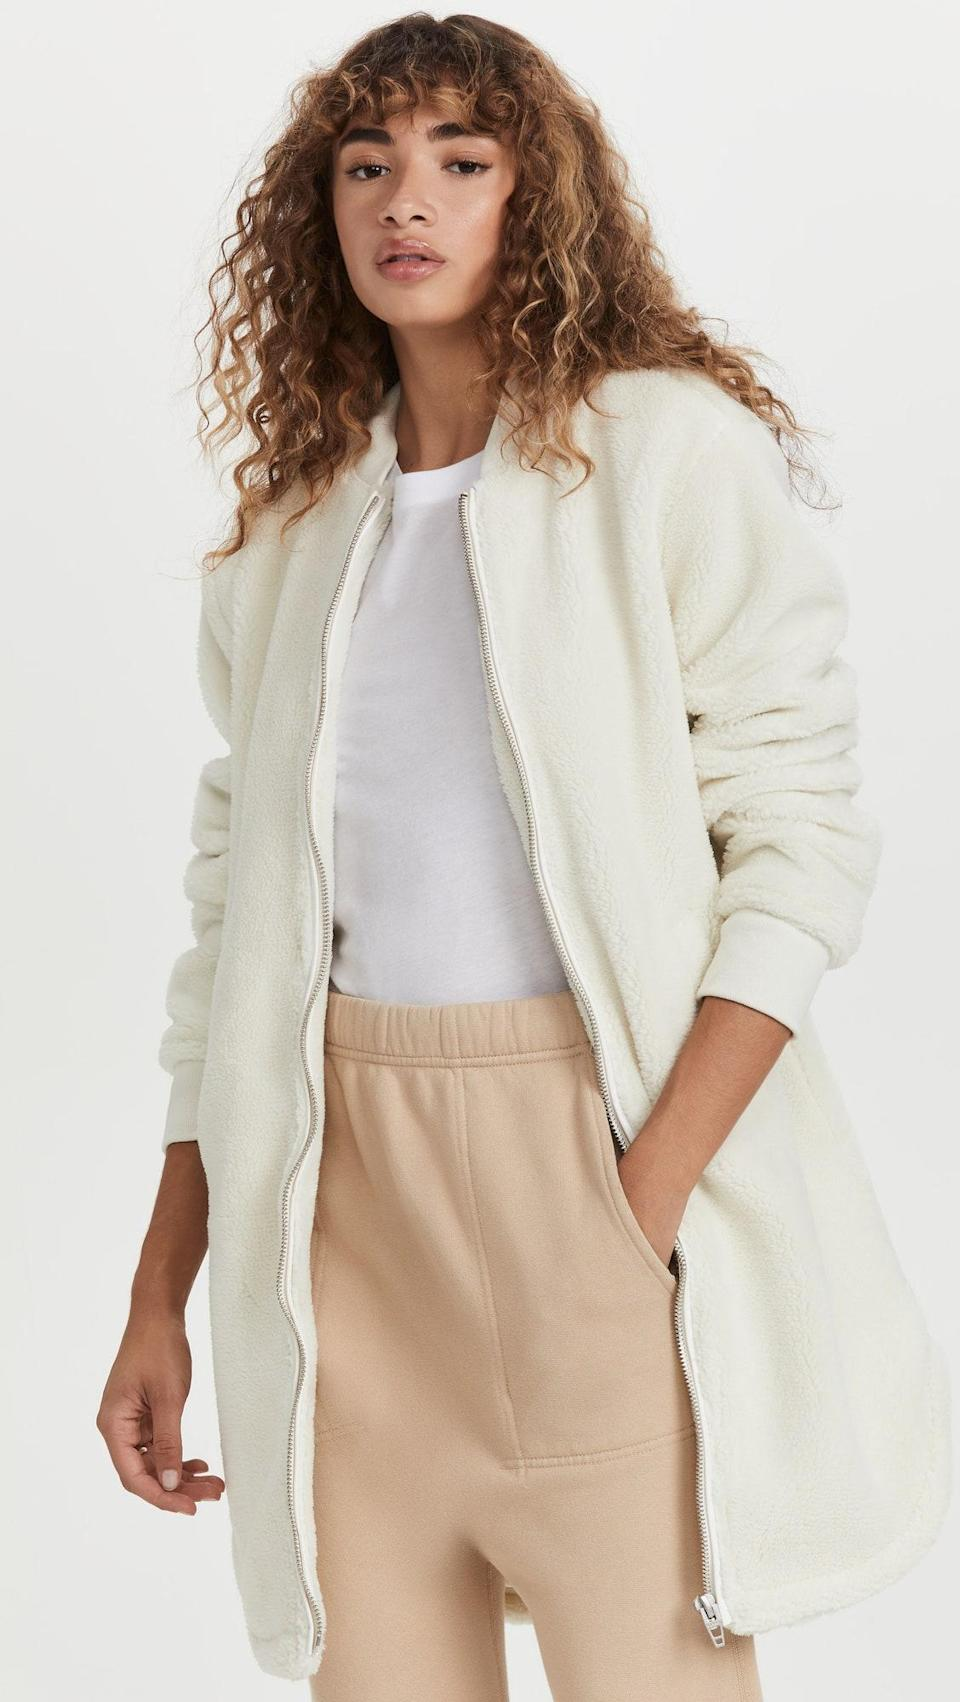 """Cropped styles may reign supreme in teddy land, but a longline bomber style like this one looks on-trend with sweats and a plain <a href=""""https://www.glamour.com/gallery/the-perfect-white-t-shirt-according-to-glamour-editors?mbid=synd_yahoo_rss"""" rel=""""nofollow noopener"""" target=""""_blank"""" data-ylk=""""slk:white T-shirt"""" class=""""link rapid-noclick-resp"""">white T-shirt</a>. $168, Shopbop. <a href=""""https://www.shopbop.com/angels-advocate-blank-denim/vp/v=1/1584582161.htm"""" rel=""""nofollow noopener"""" target=""""_blank"""" data-ylk=""""slk:Get it now!"""" class=""""link rapid-noclick-resp"""">Get it now!</a>"""